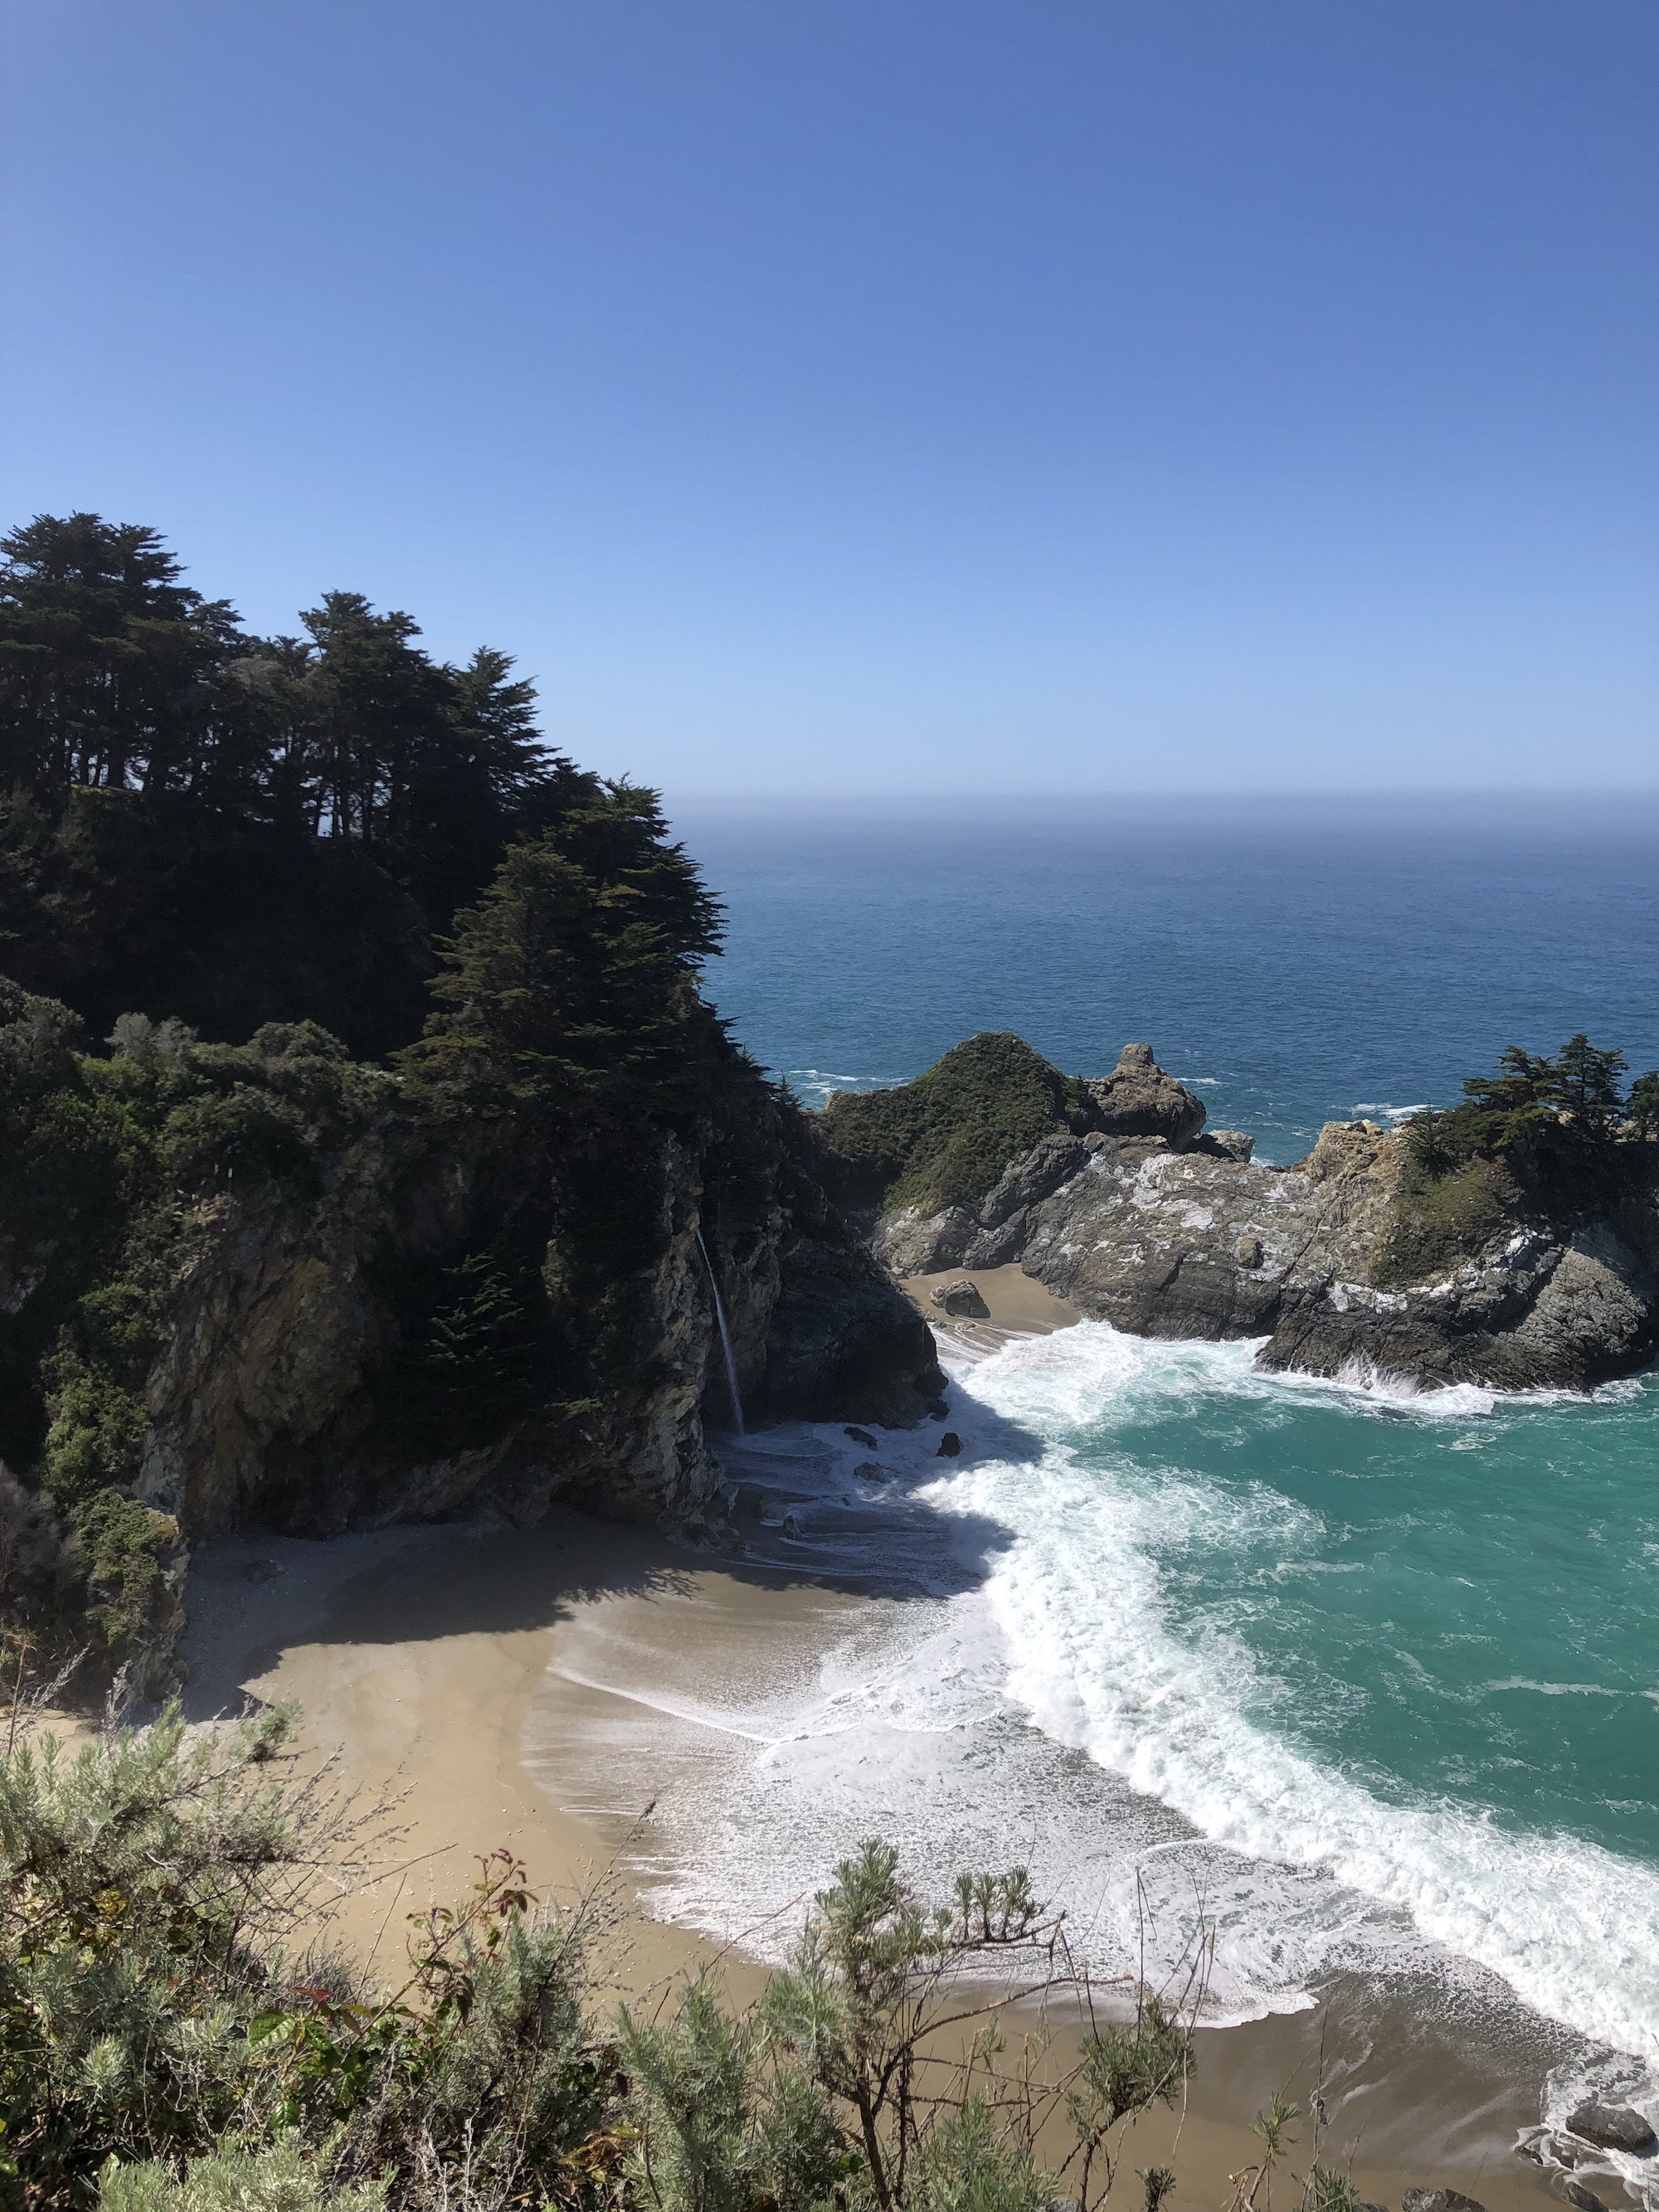 An electric road trip down Highway 1 should definitely include a stop to hike the Overlook Trail to McWay Falls in Julia Pfeiffer Burns State Park.